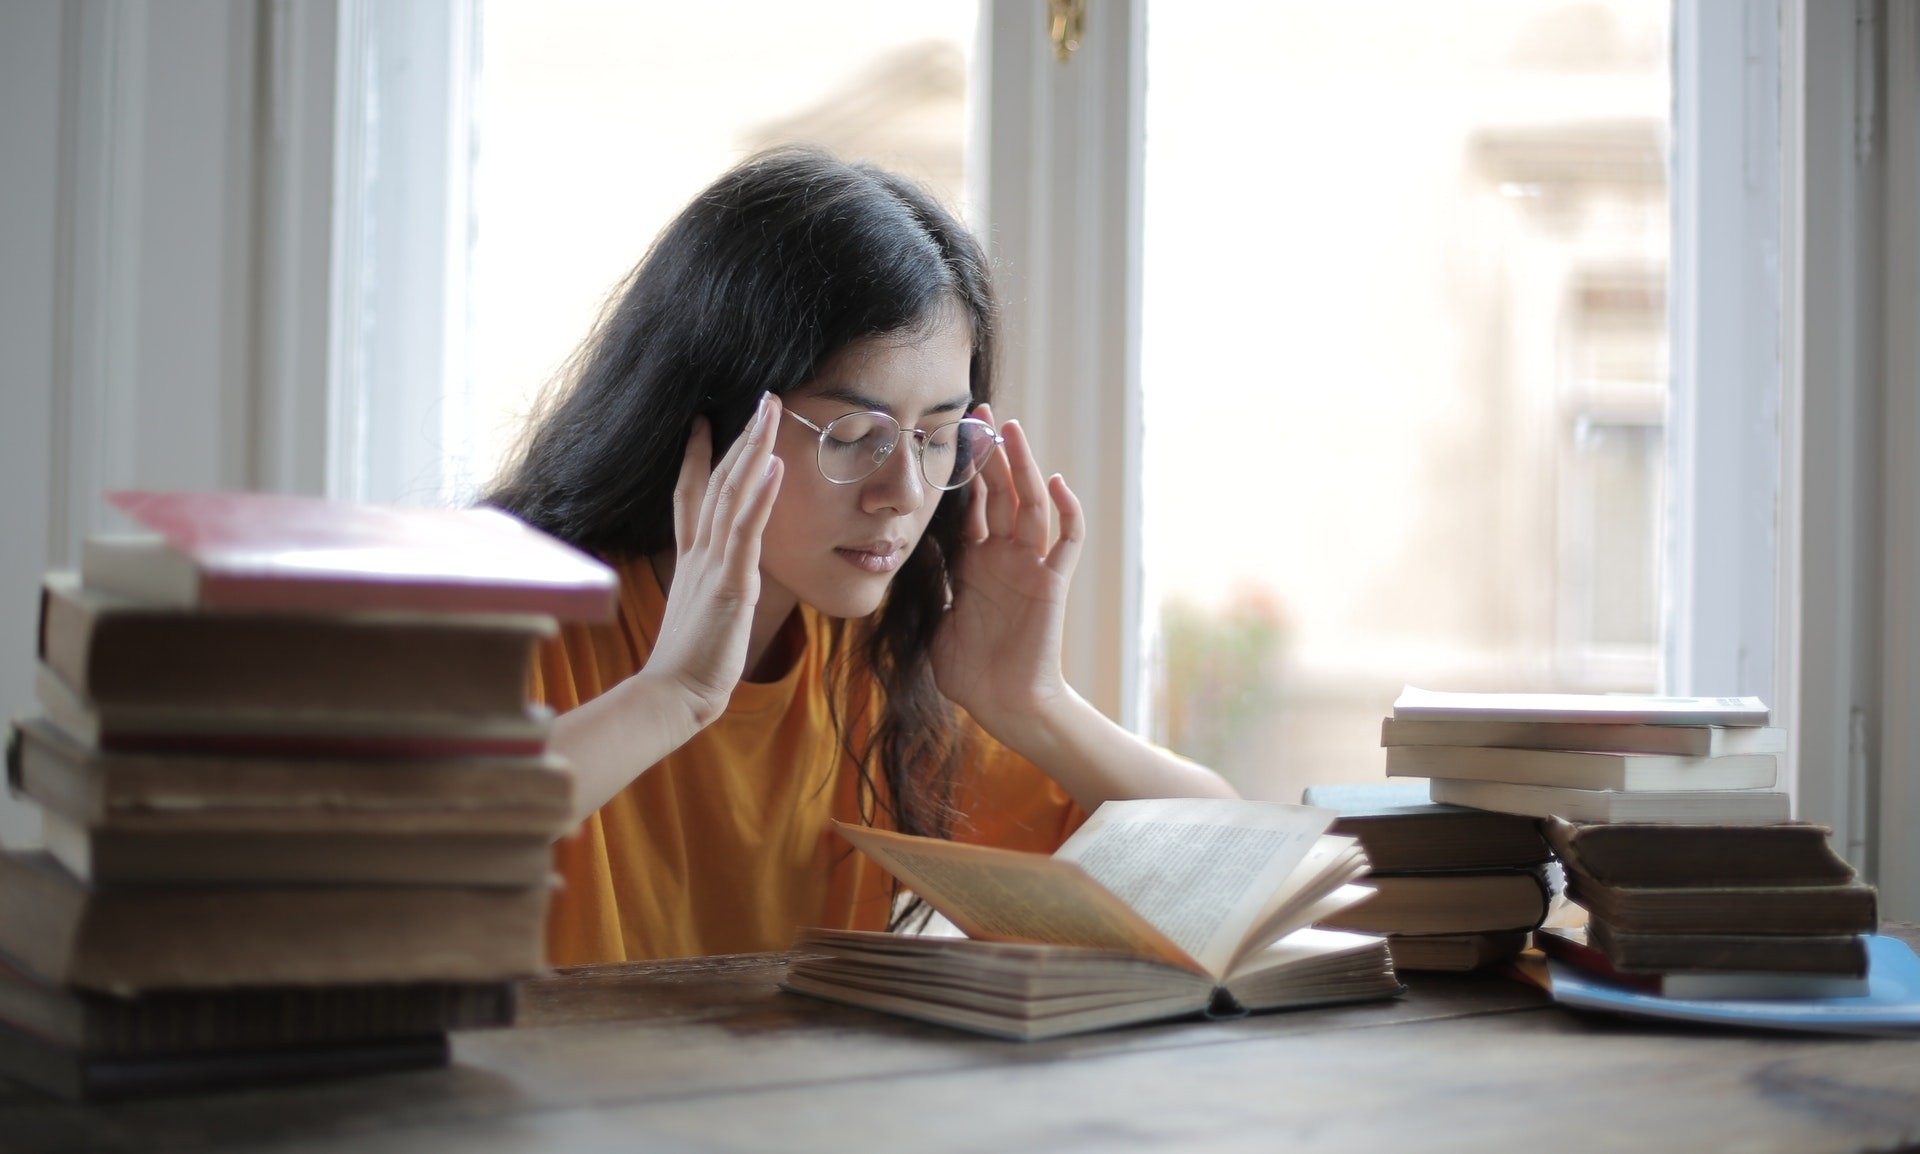 A high school student sits next to several piles of books and touches her temples as she struggles with rote memorization.